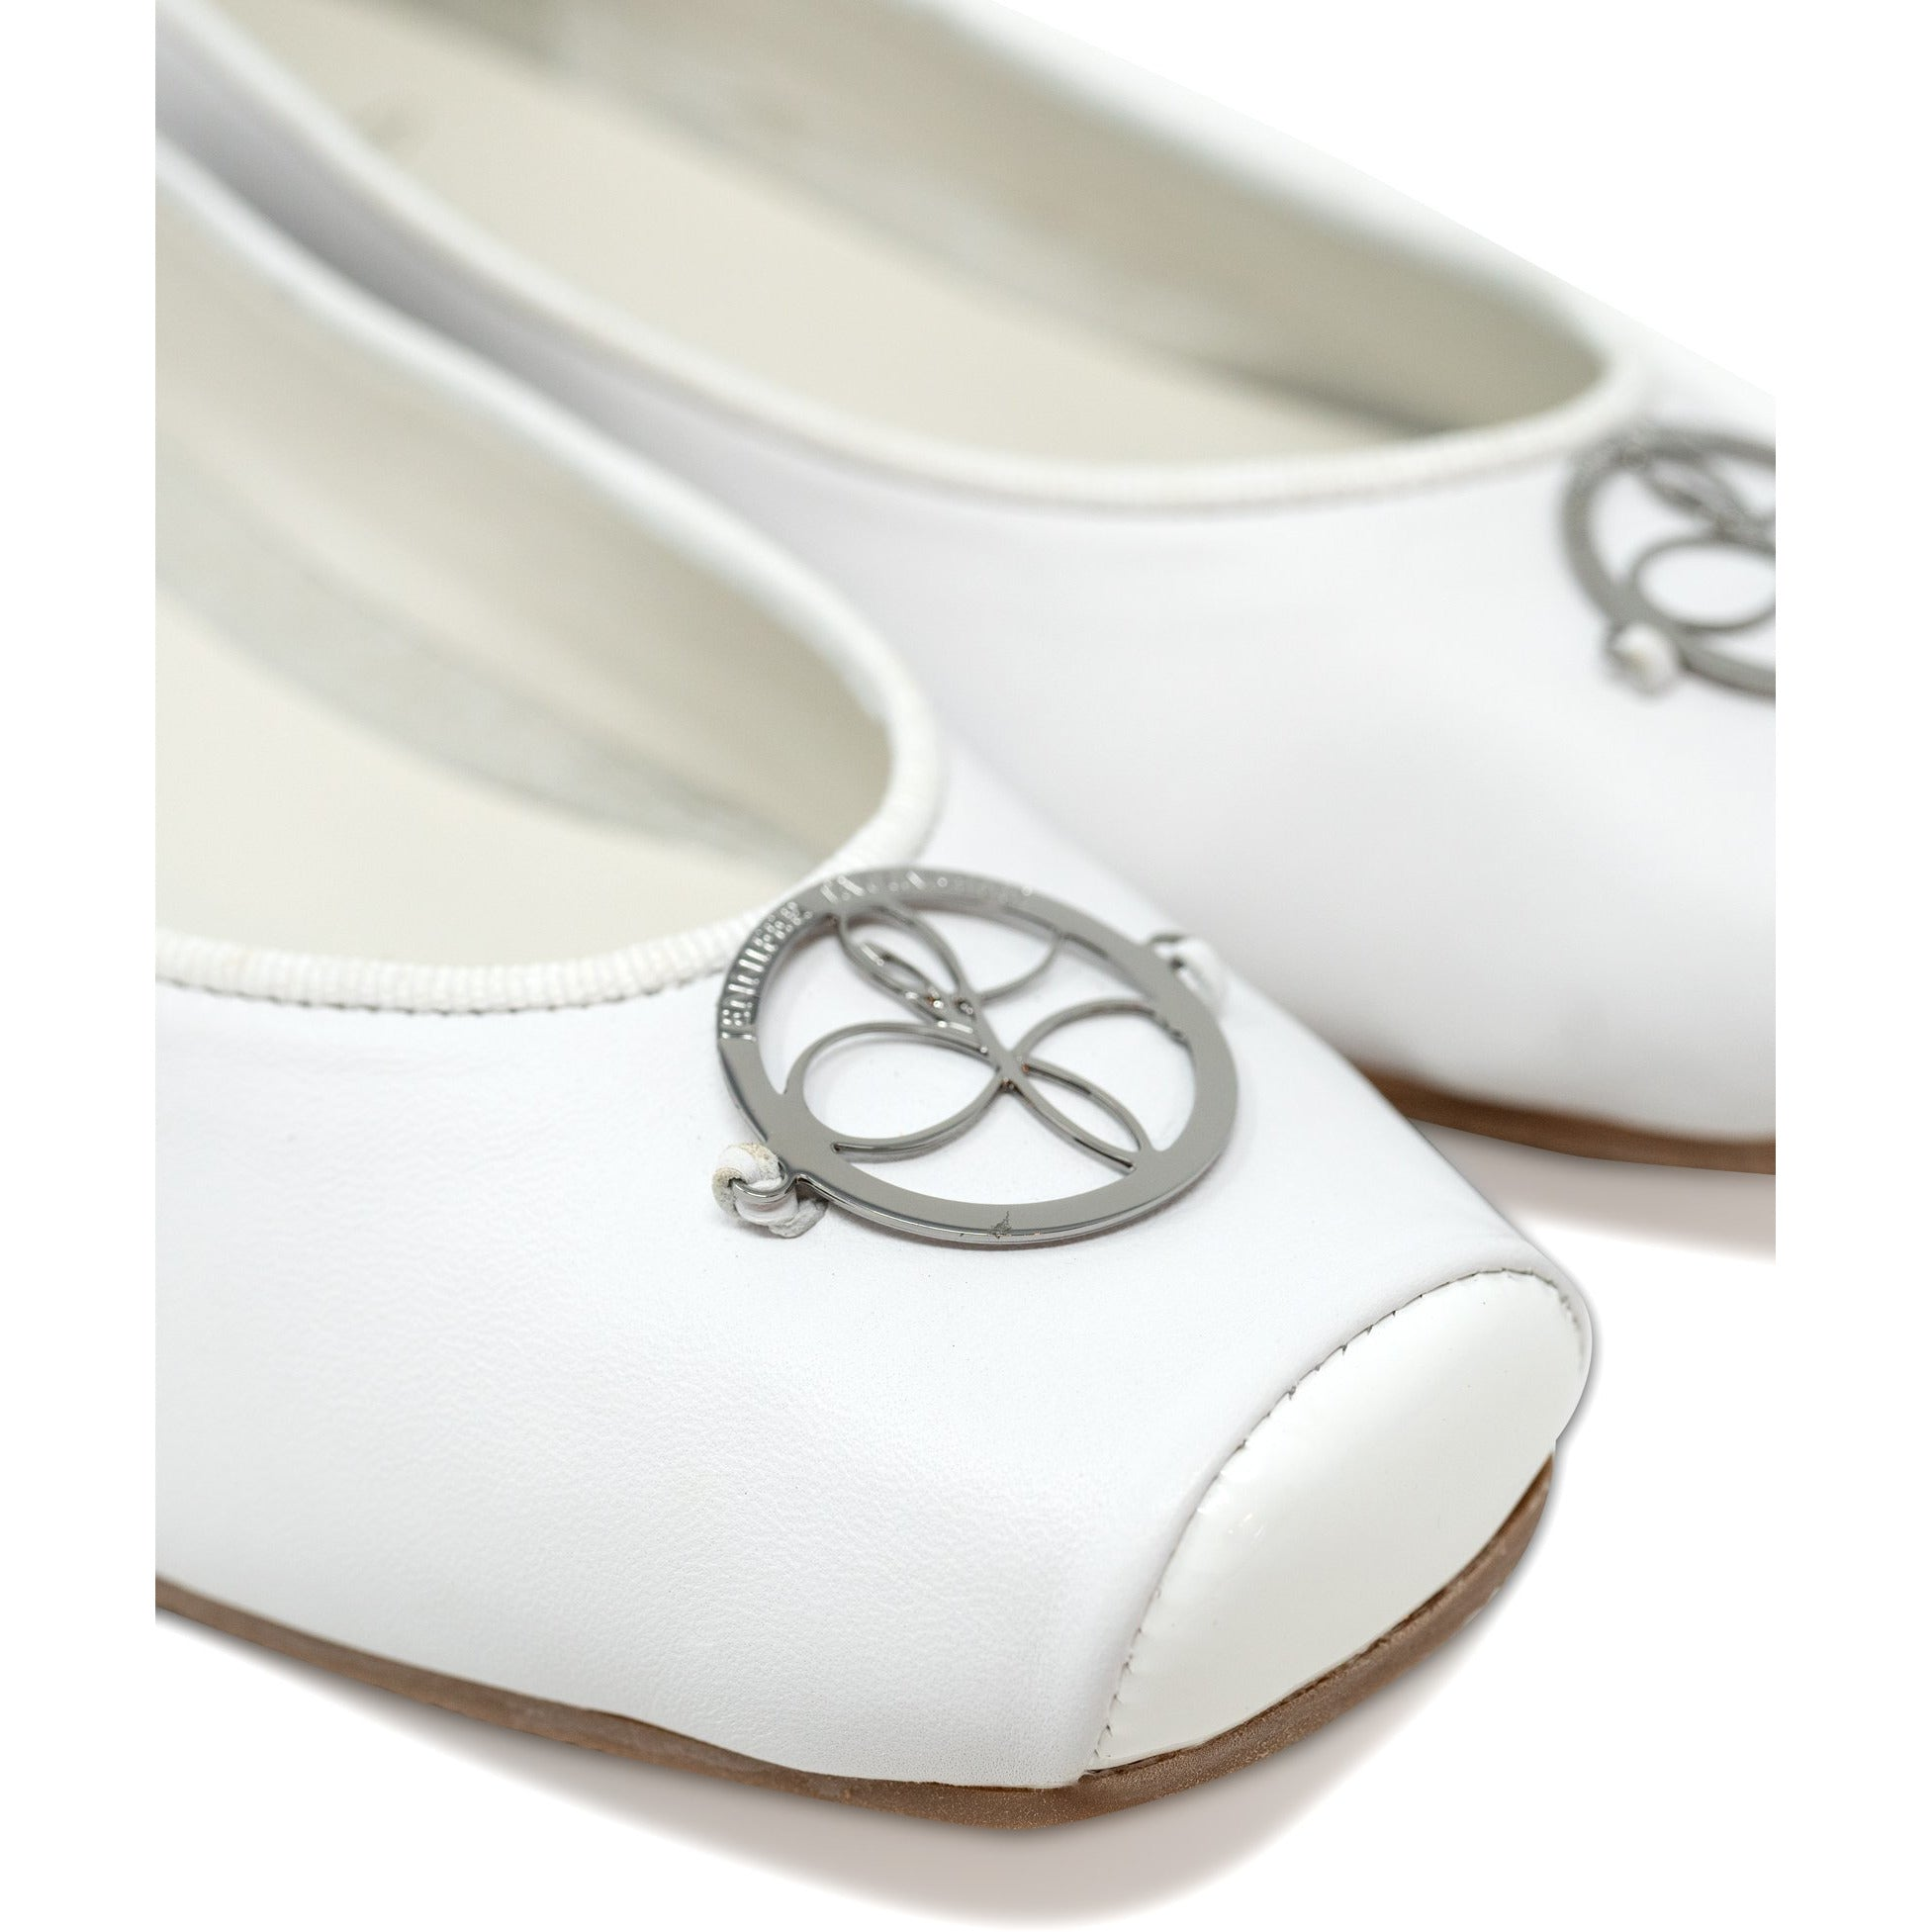 Women Ballerina Shoes with hidden heel in White - Jennifer Tattanelli